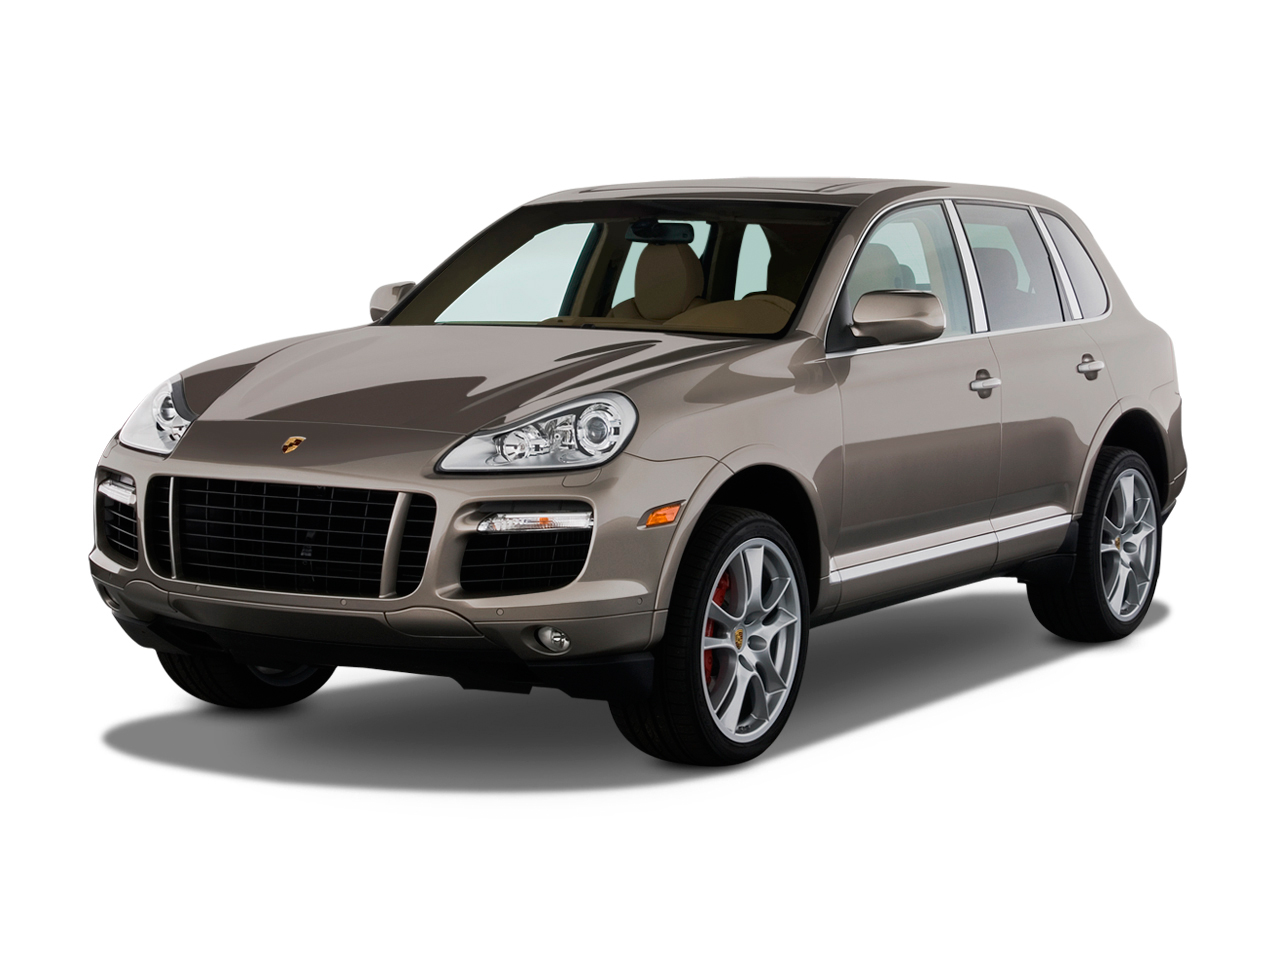 2010 Porsche Cayenne Safety Review And Crash Test Ratings